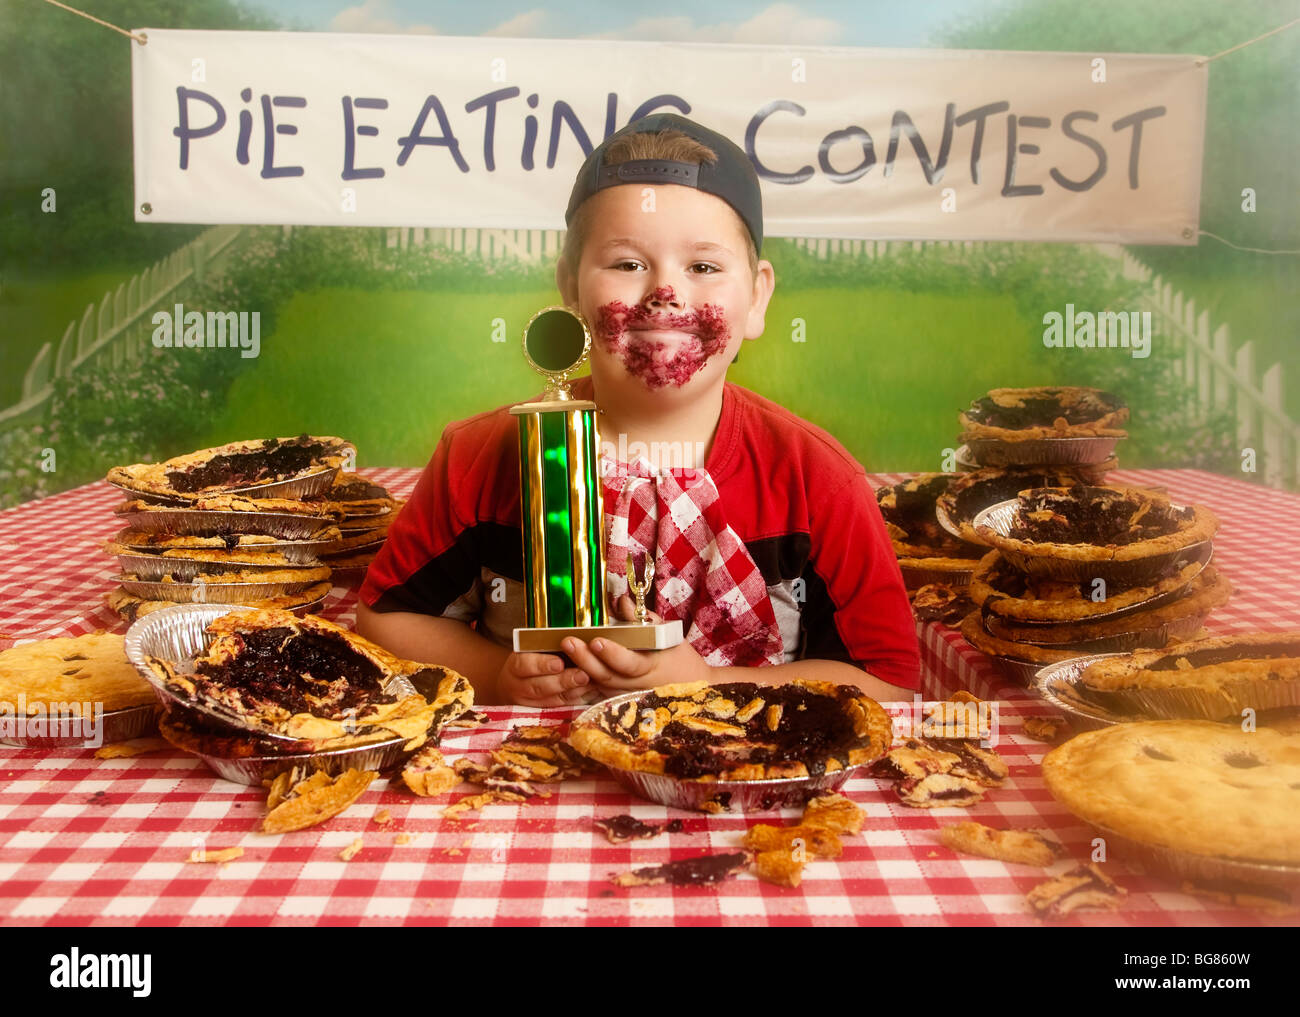 Boy at pie eating contest Stock Photo, Royalty Free Image ...